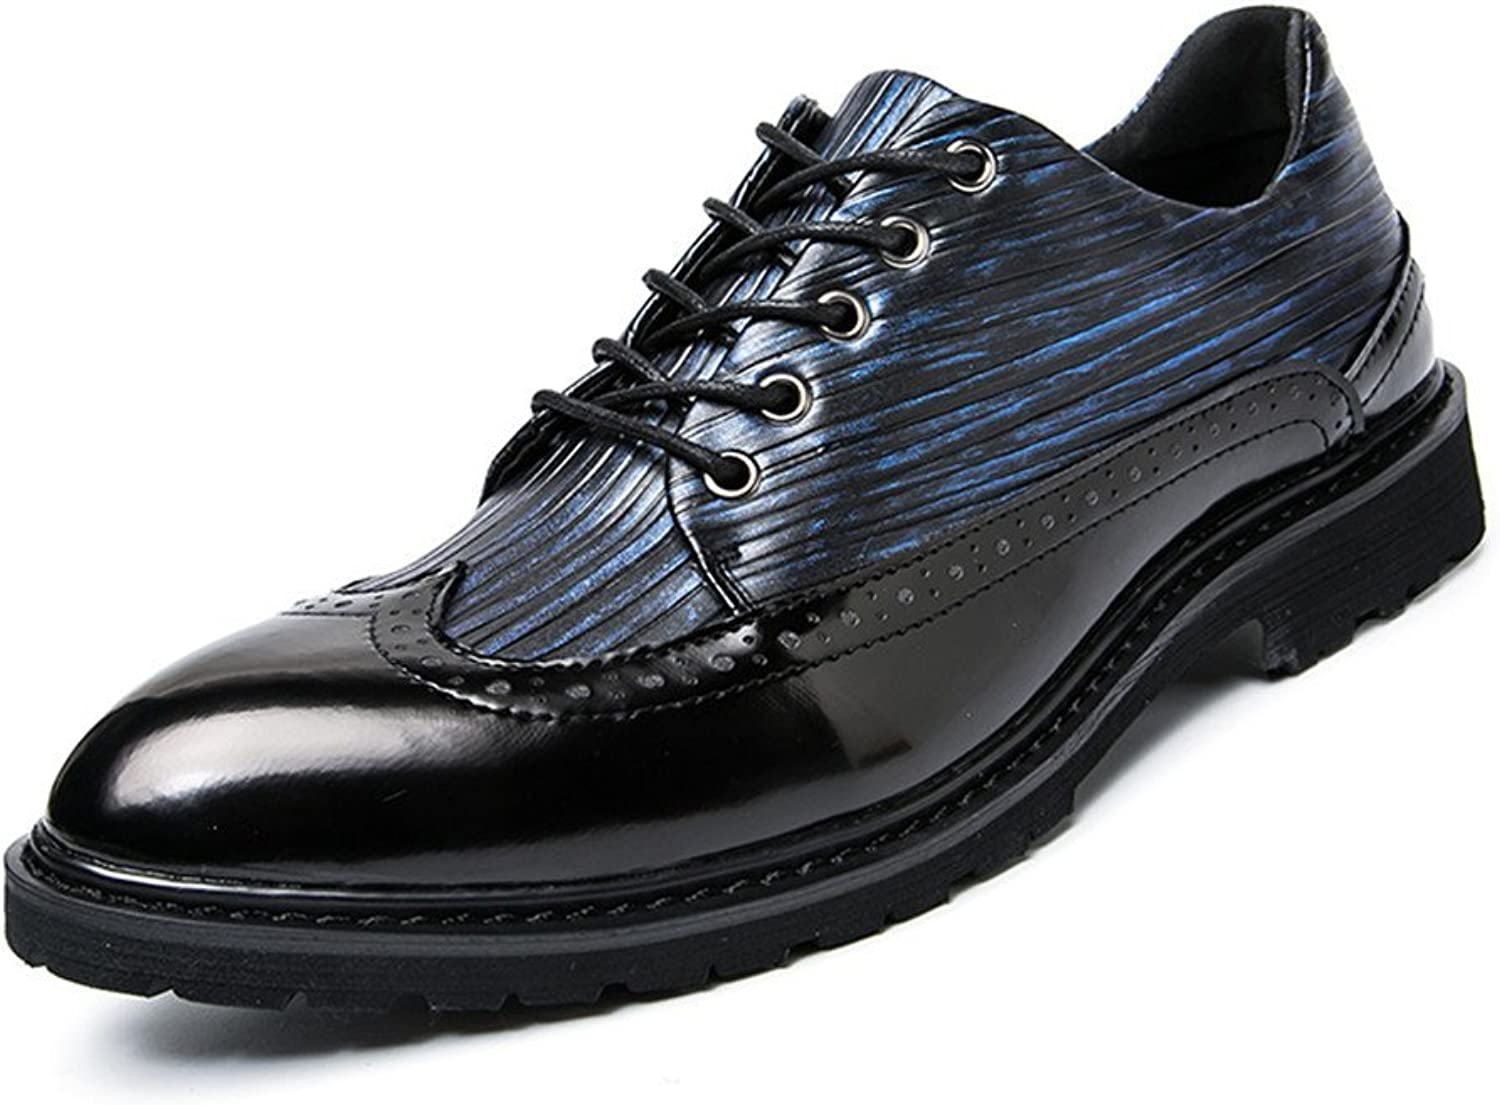 Men's Business Oxford Casual Spring and Autumn colorful Antique British Point Brogue shoes Cricket shoes